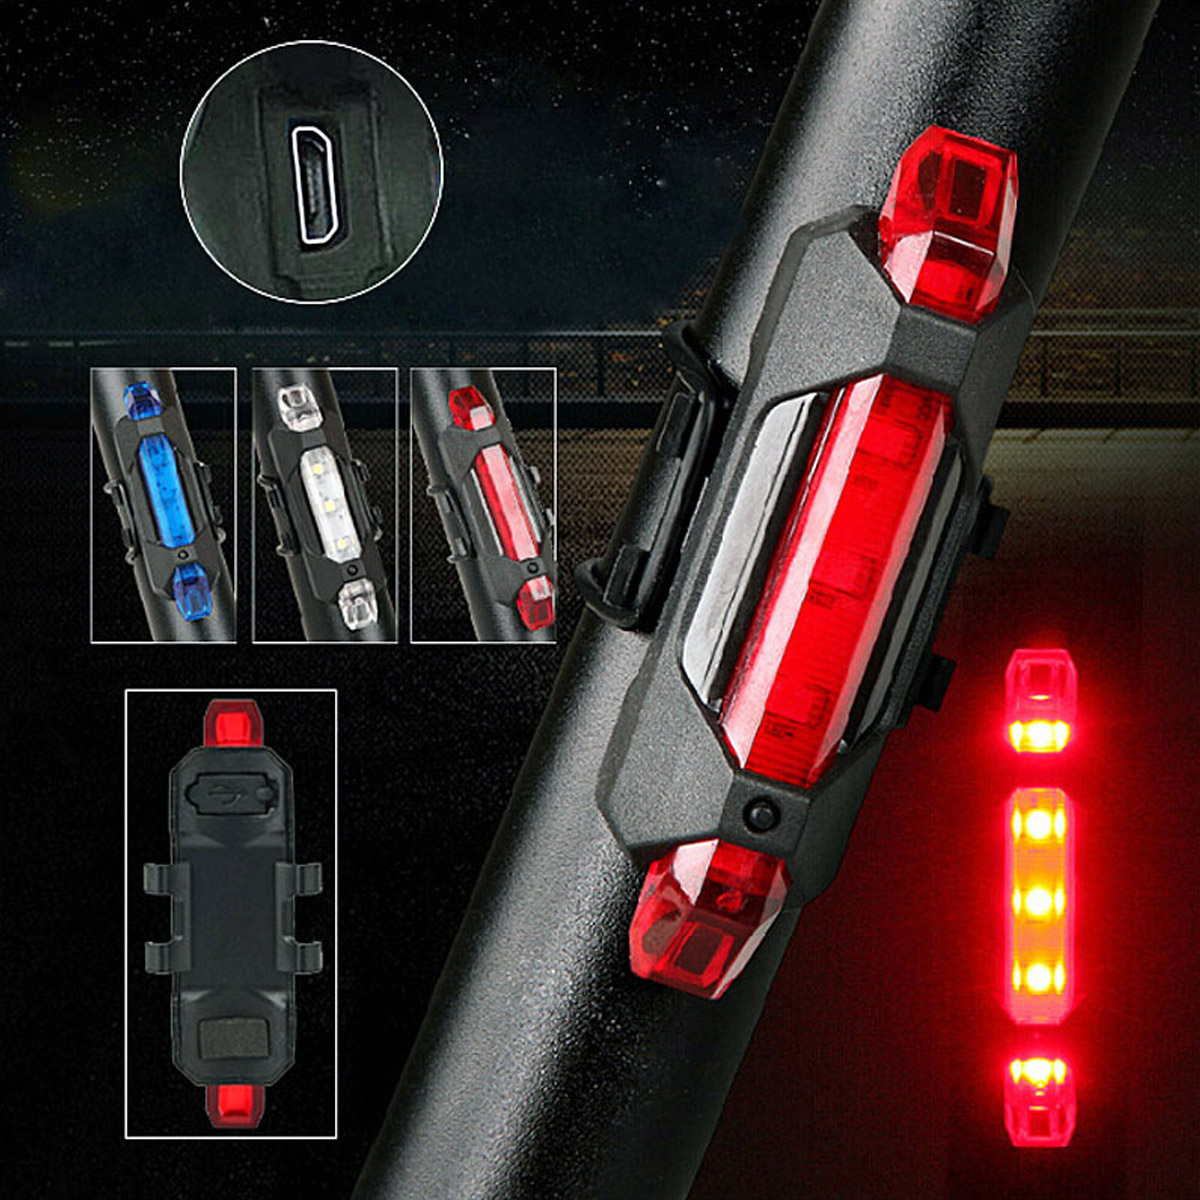 New Portable LED USB Rechargeable Cycling Light Bike Bicycle Tail Rear Safety Warning Light 55 YS-BUY